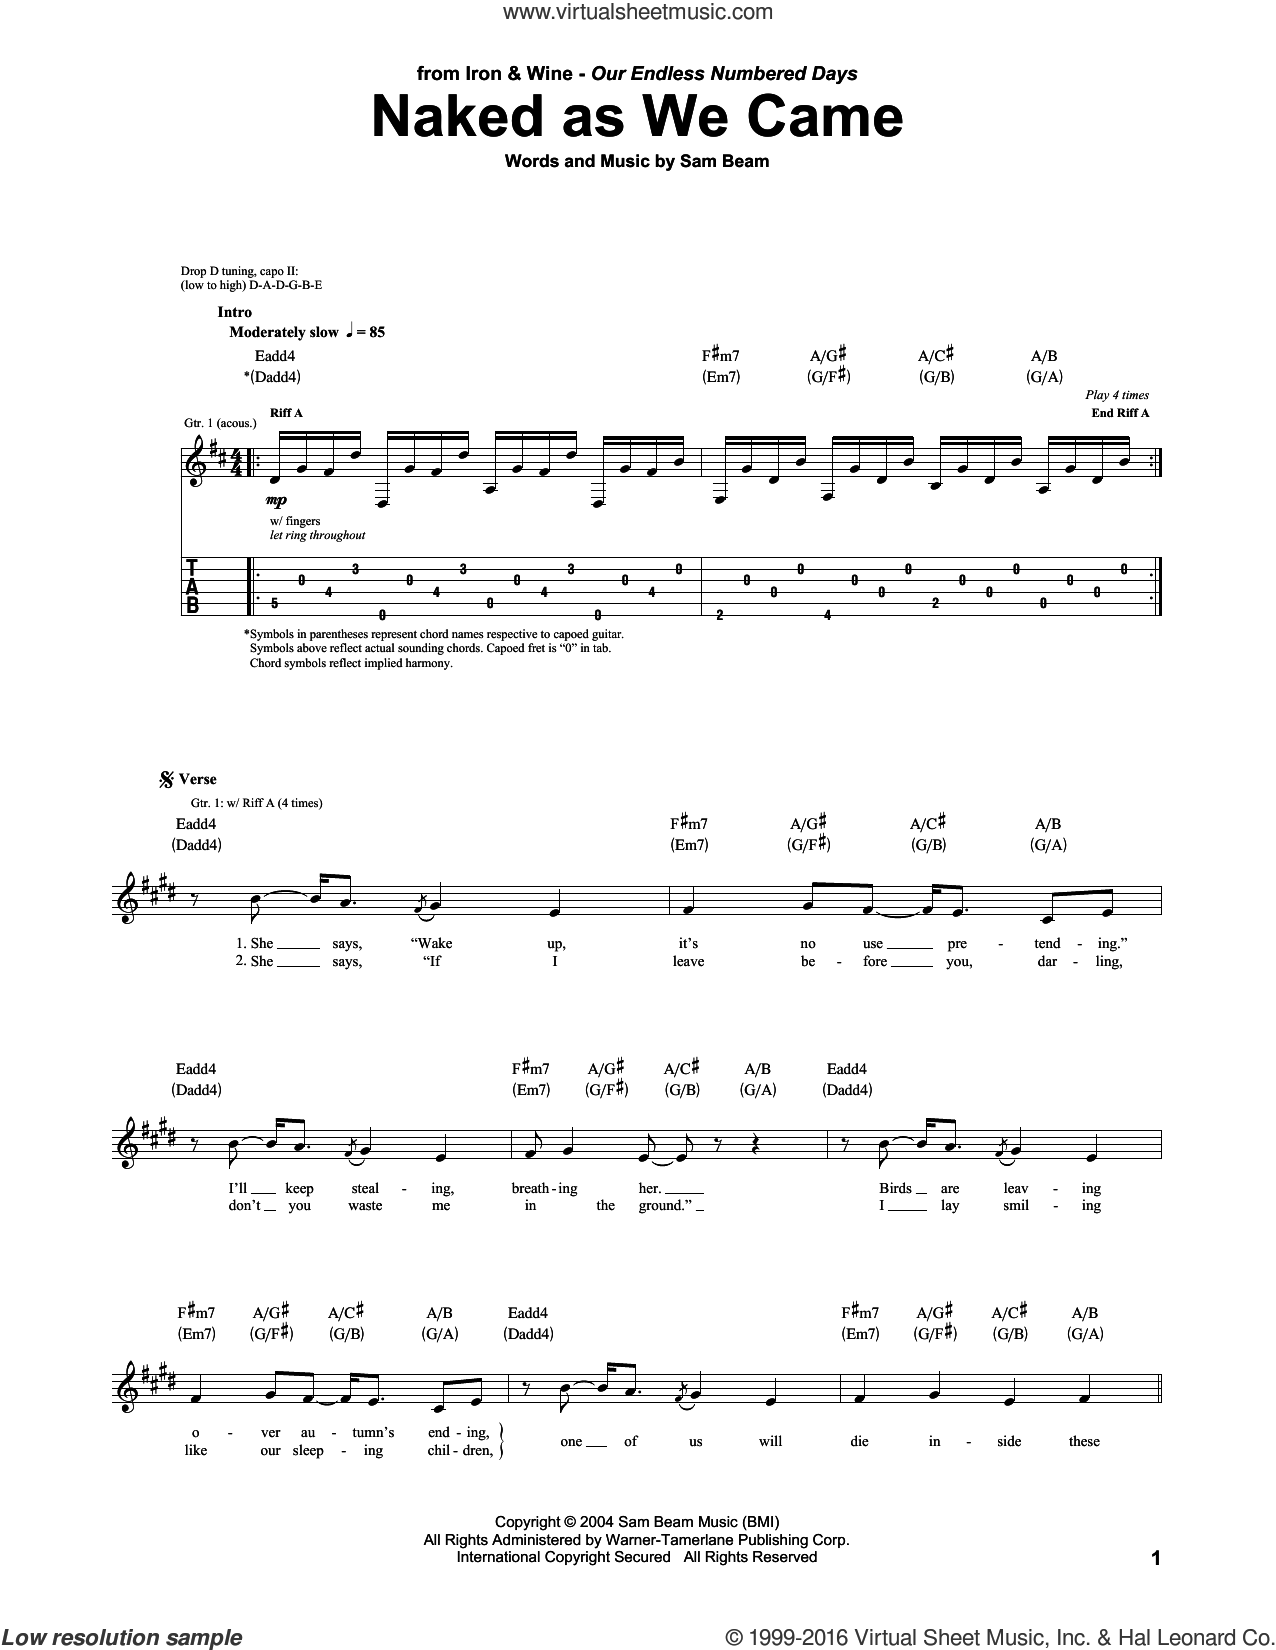 Naked As We Came sheet music for guitar (tablature) by Iron & Wine and Samuel Beam, intermediate skill level